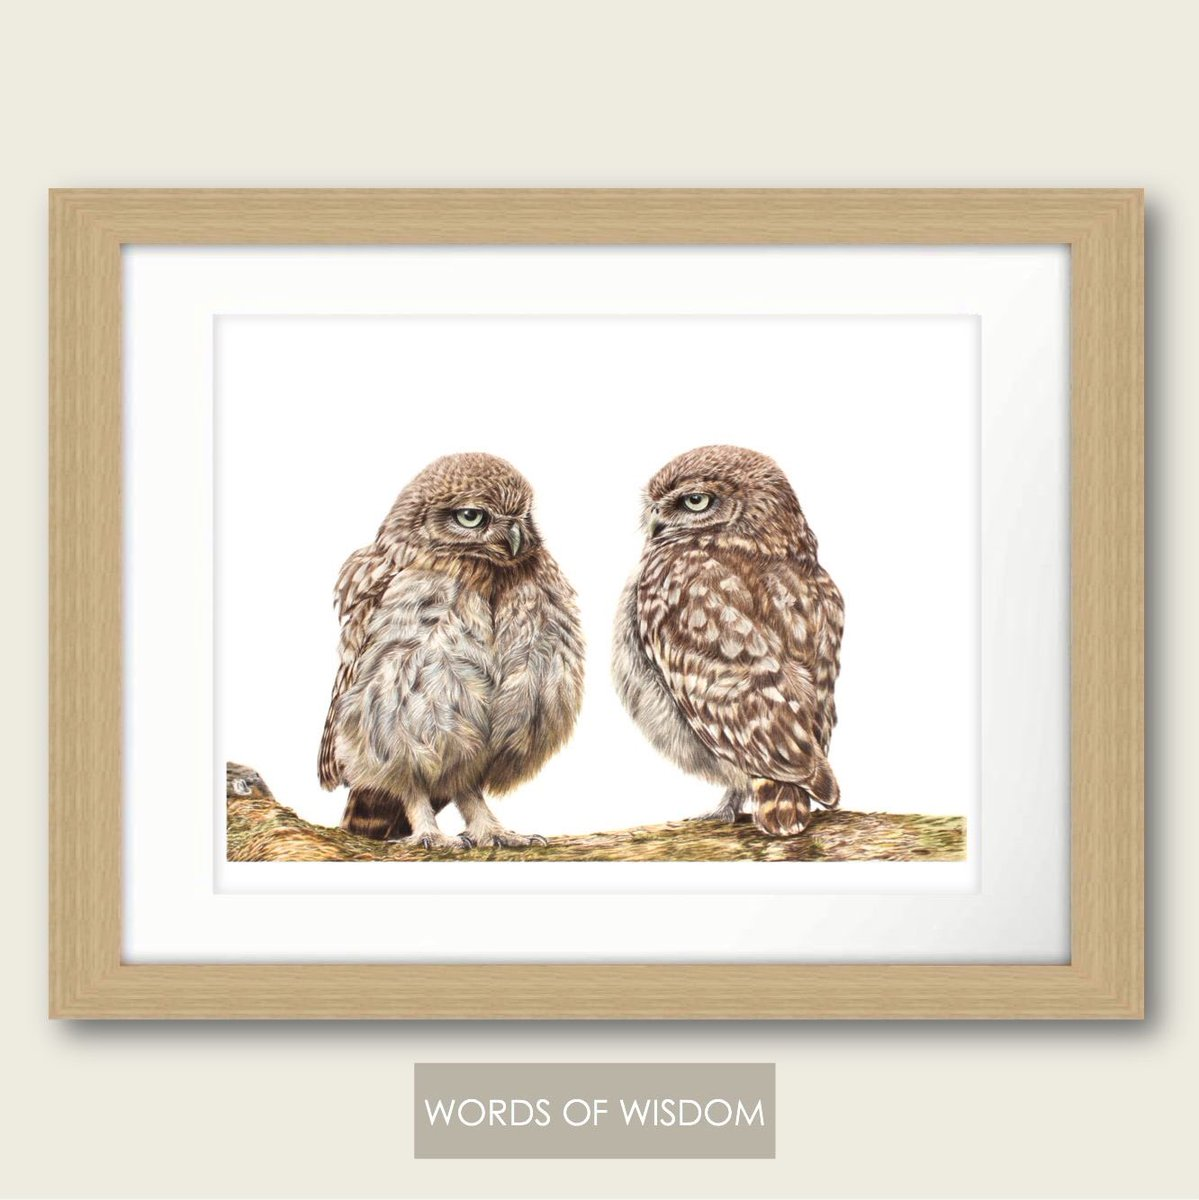 &quot;A Sunday well spent brings a week of content.&quot; This weeks #SundayShare is the Limited Edition Print &#39;Words of Wisdom&#39;. <br>http://pic.twitter.com/gLSqoWRSLN